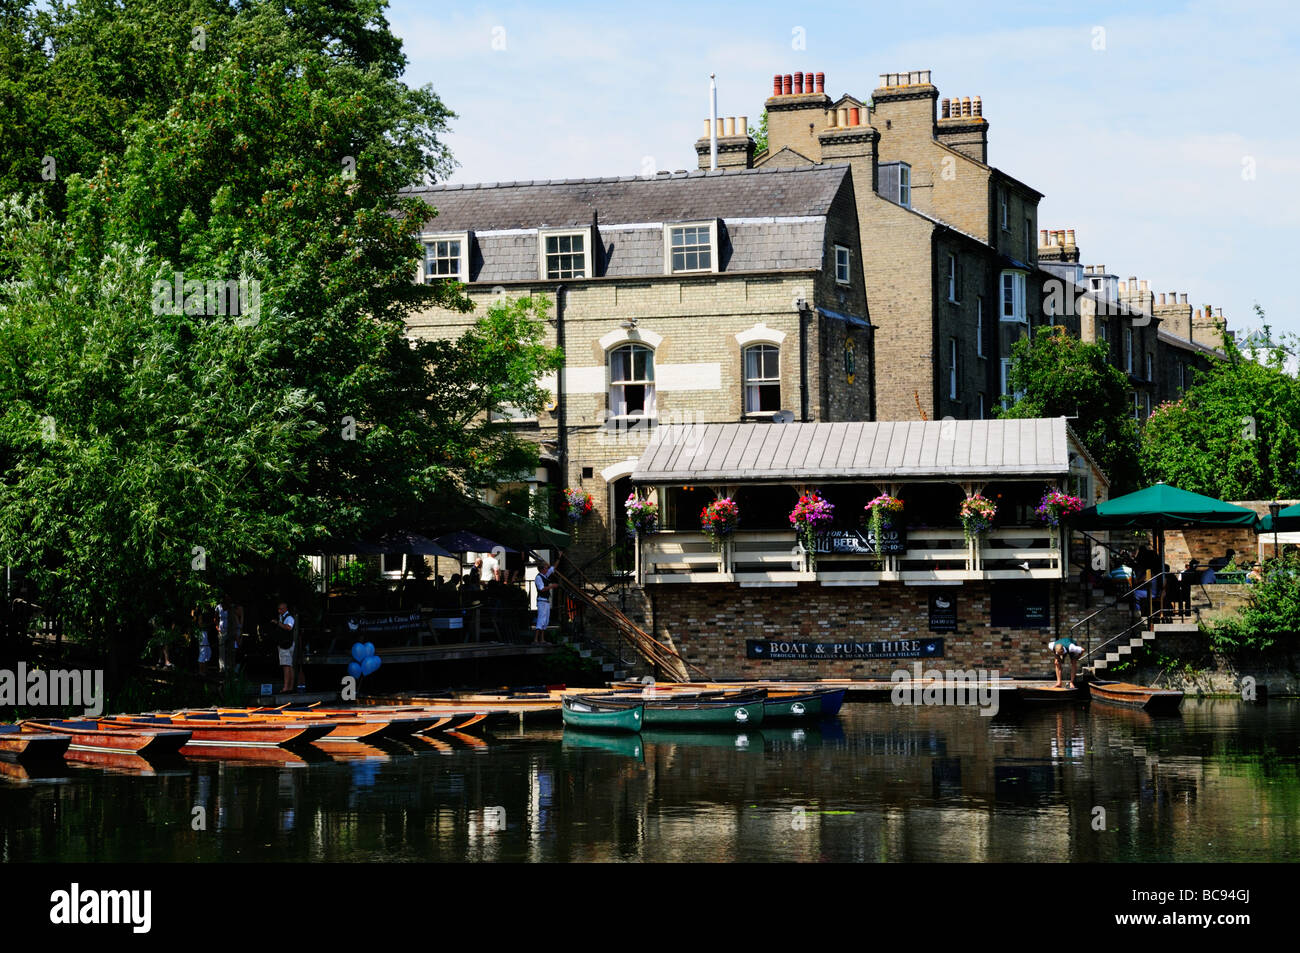 The Granta pub , millpond and punts for hire, Cambridge England UK - Stock Image